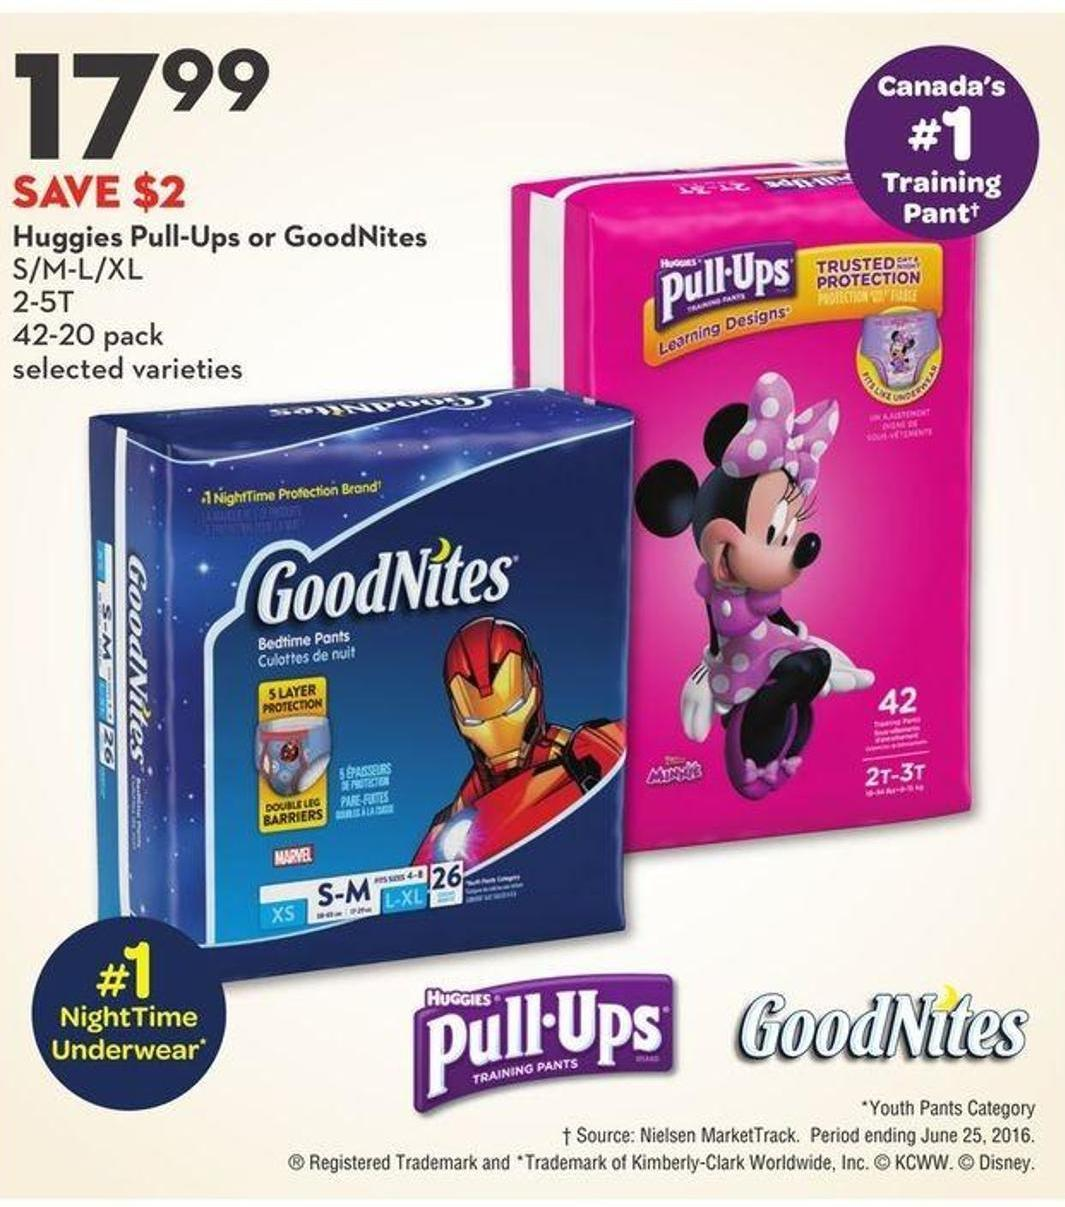 Huggies Pull-Ups or Goodnites